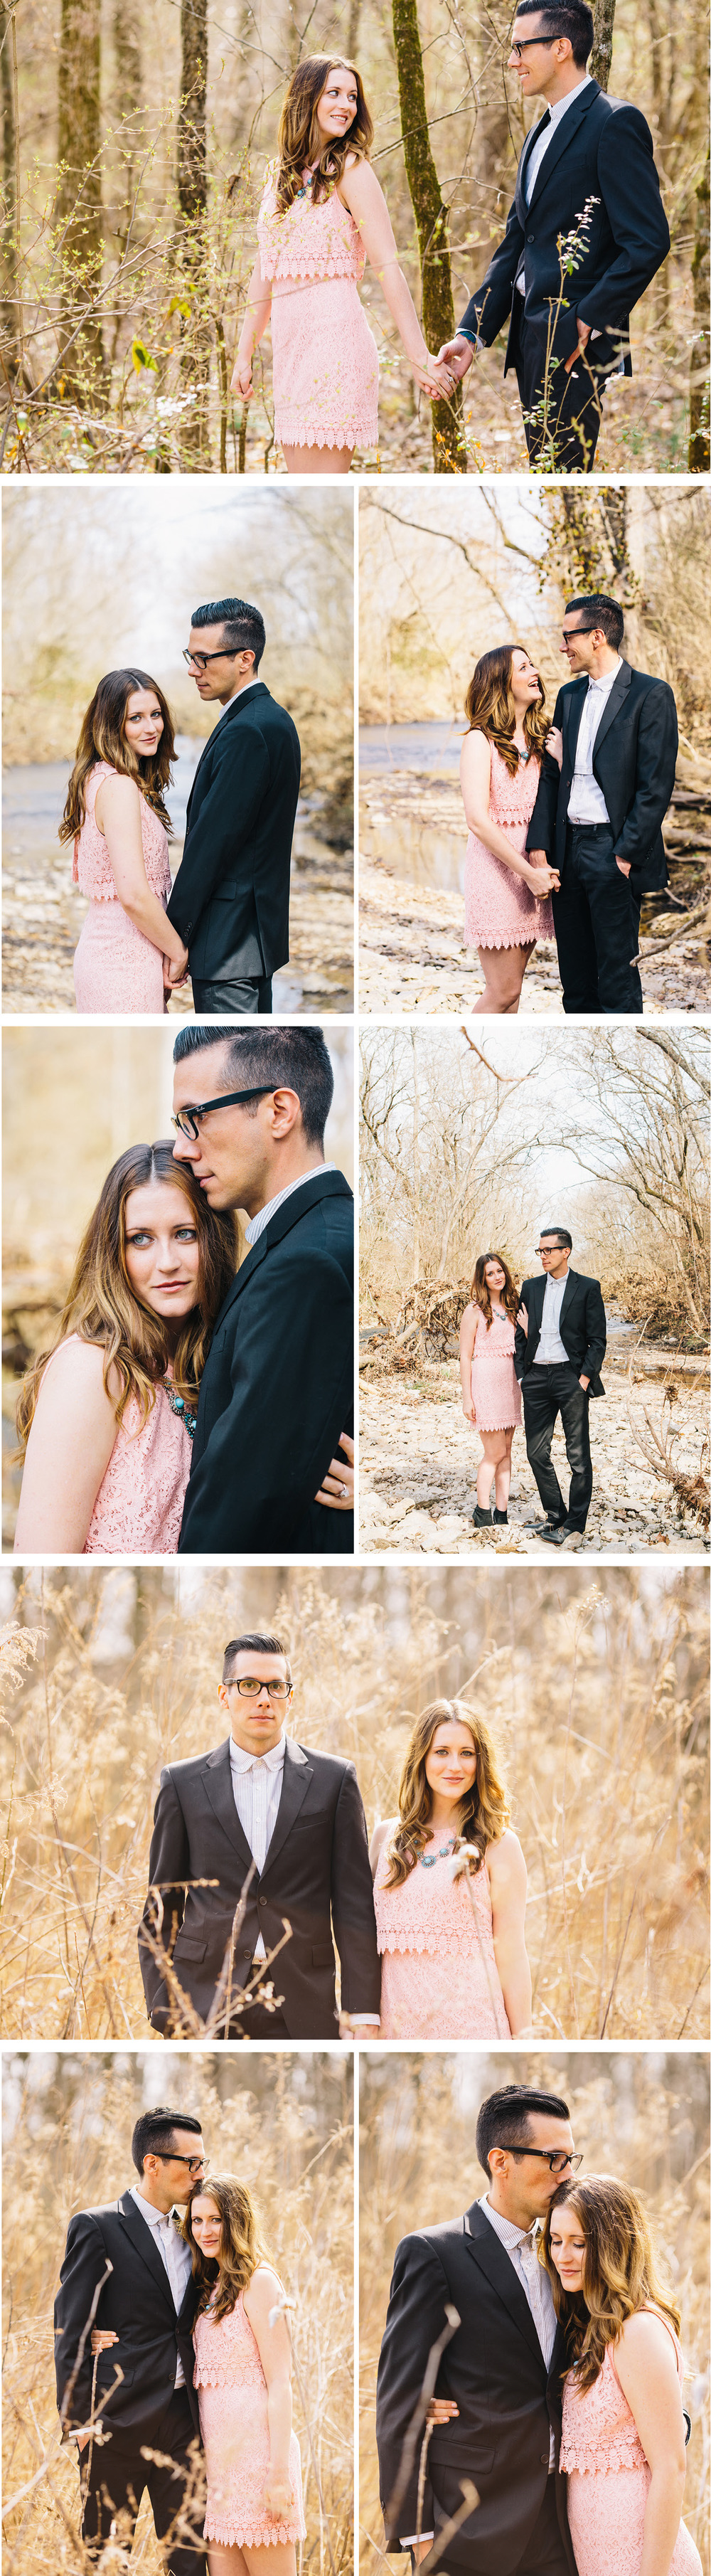 CK-Photo-Nashville-Wedding-Photographer-MB3.jpg